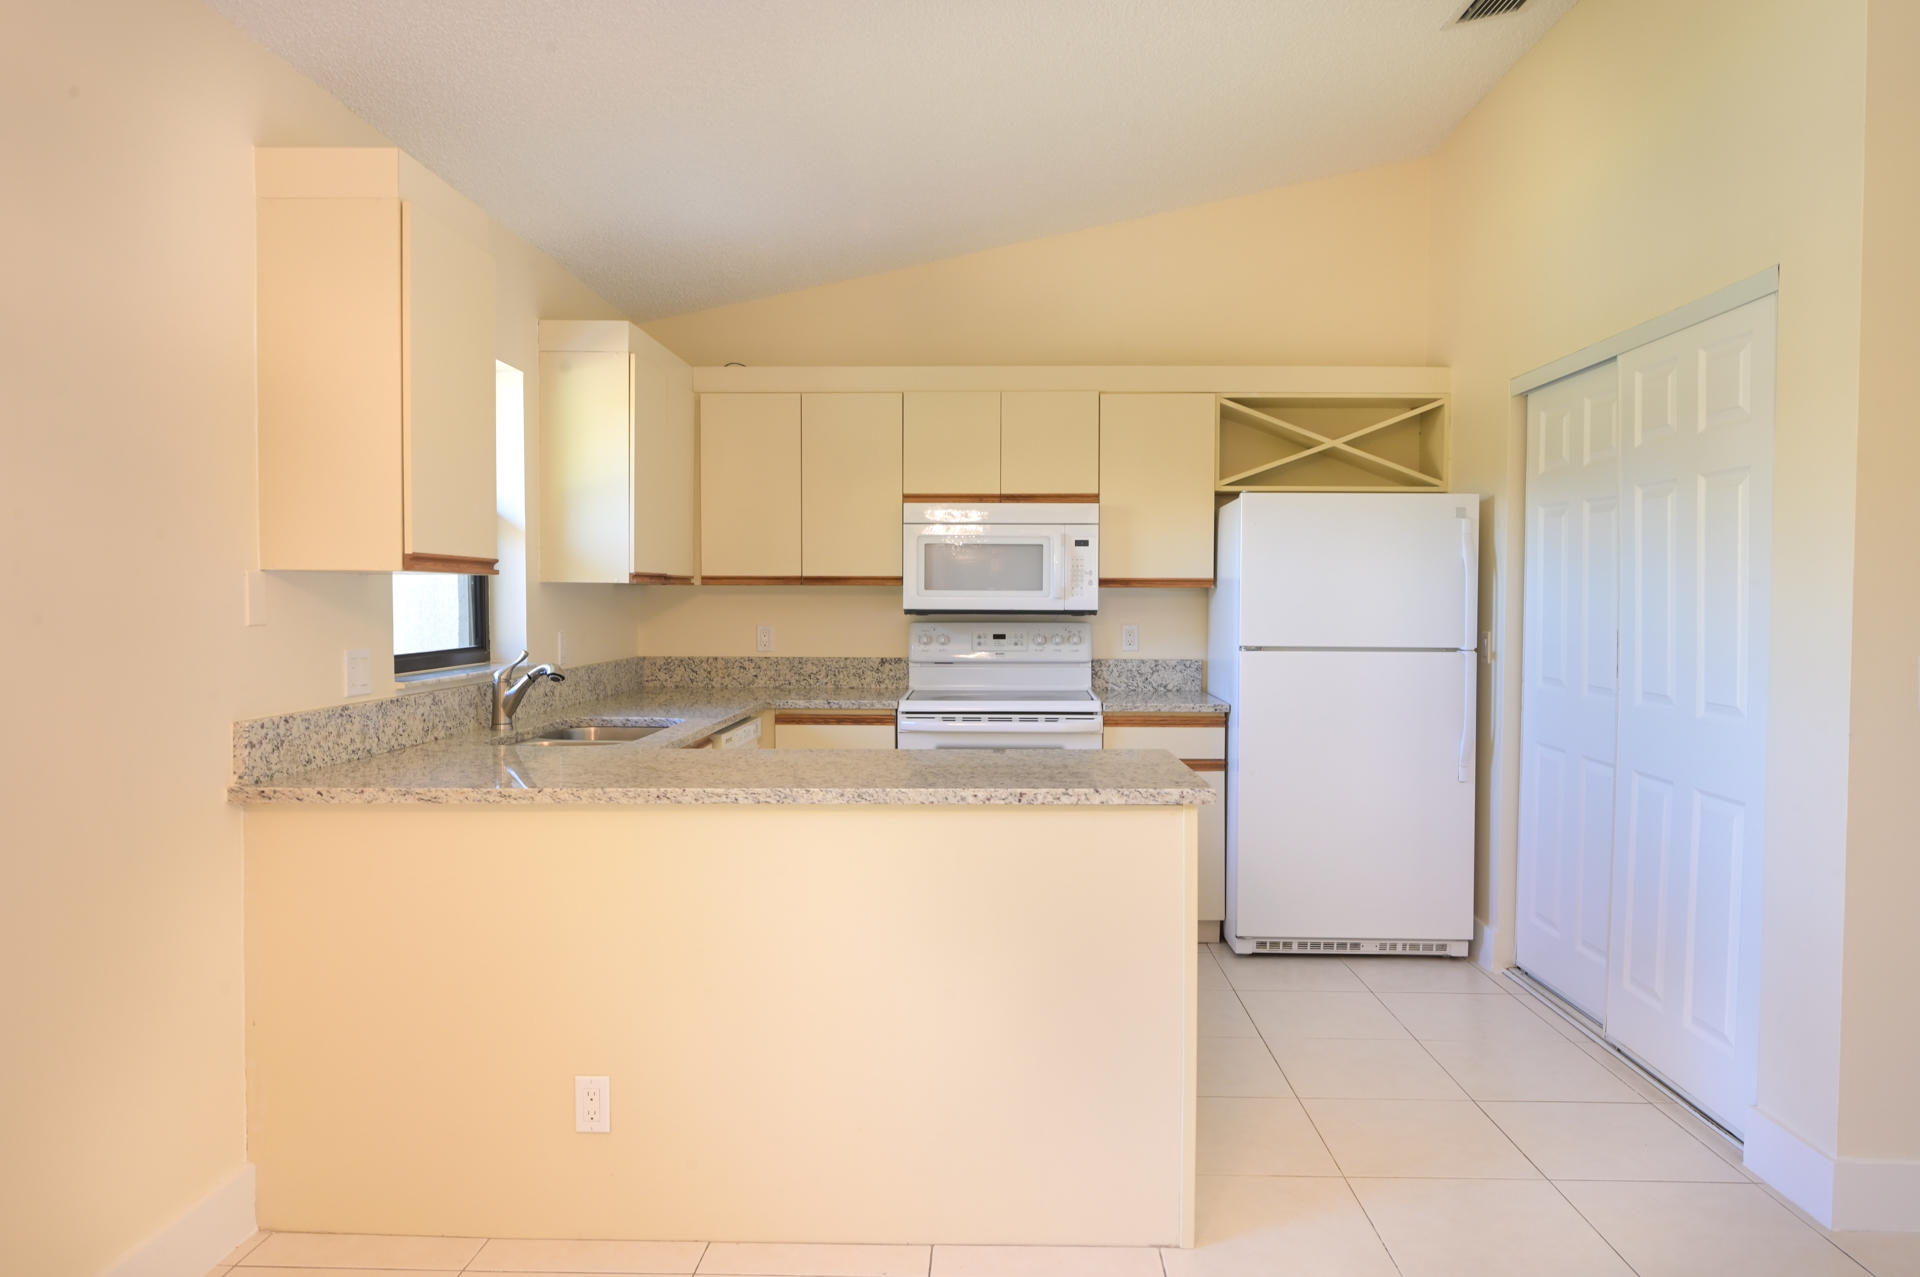 71 Via De Casas Norte Boynton Beach, FL 33426 small photo 8